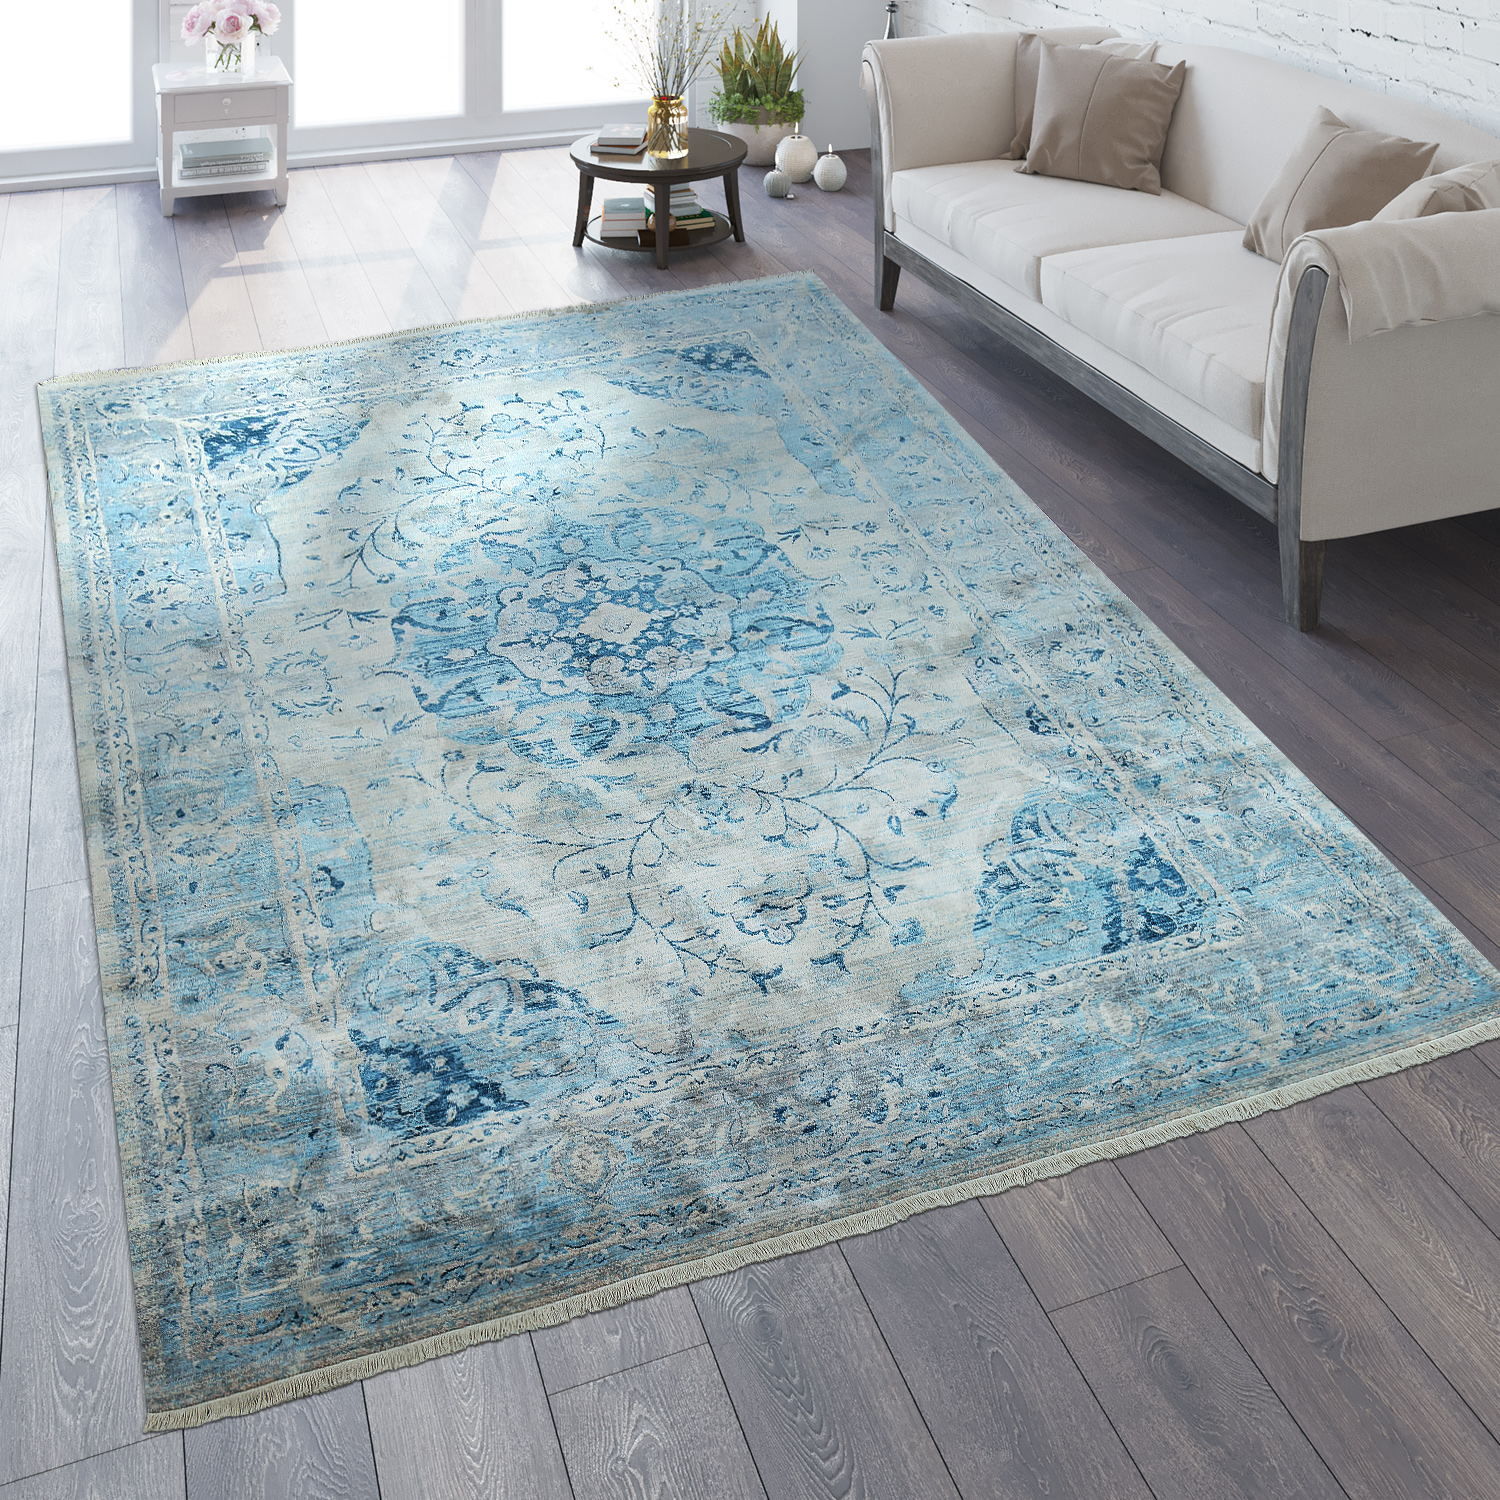 Oriental Rug Vintage Look Ornaments Blue